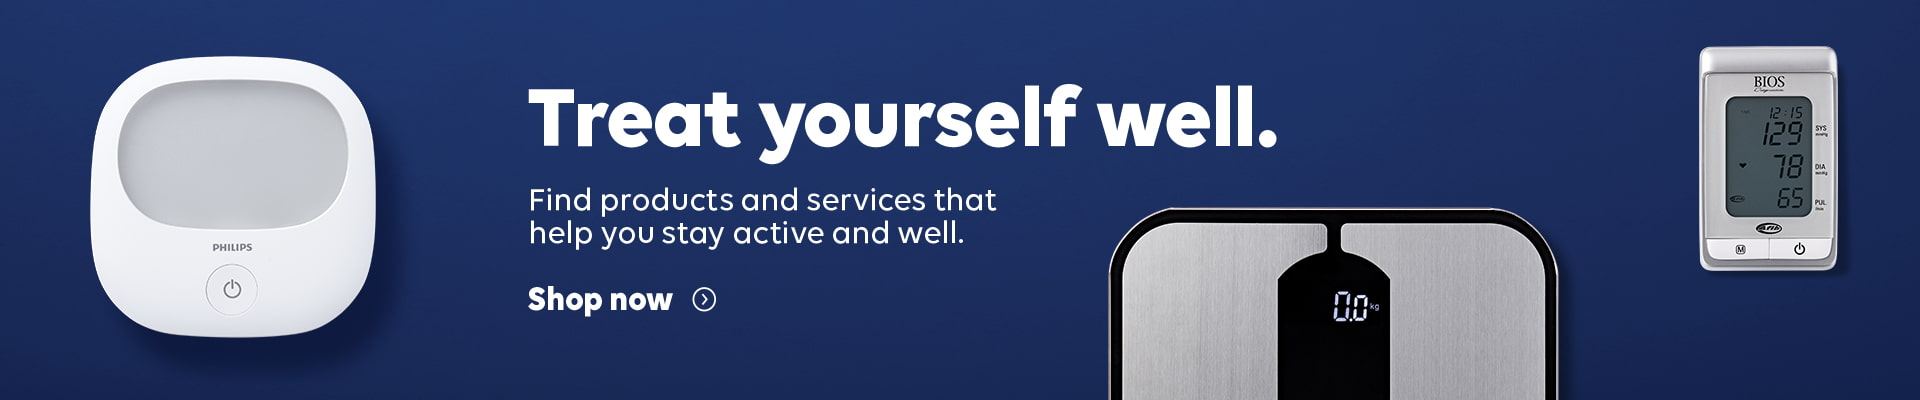 Treat yourself well. Find products and services that help you stay active and well. Shop now.